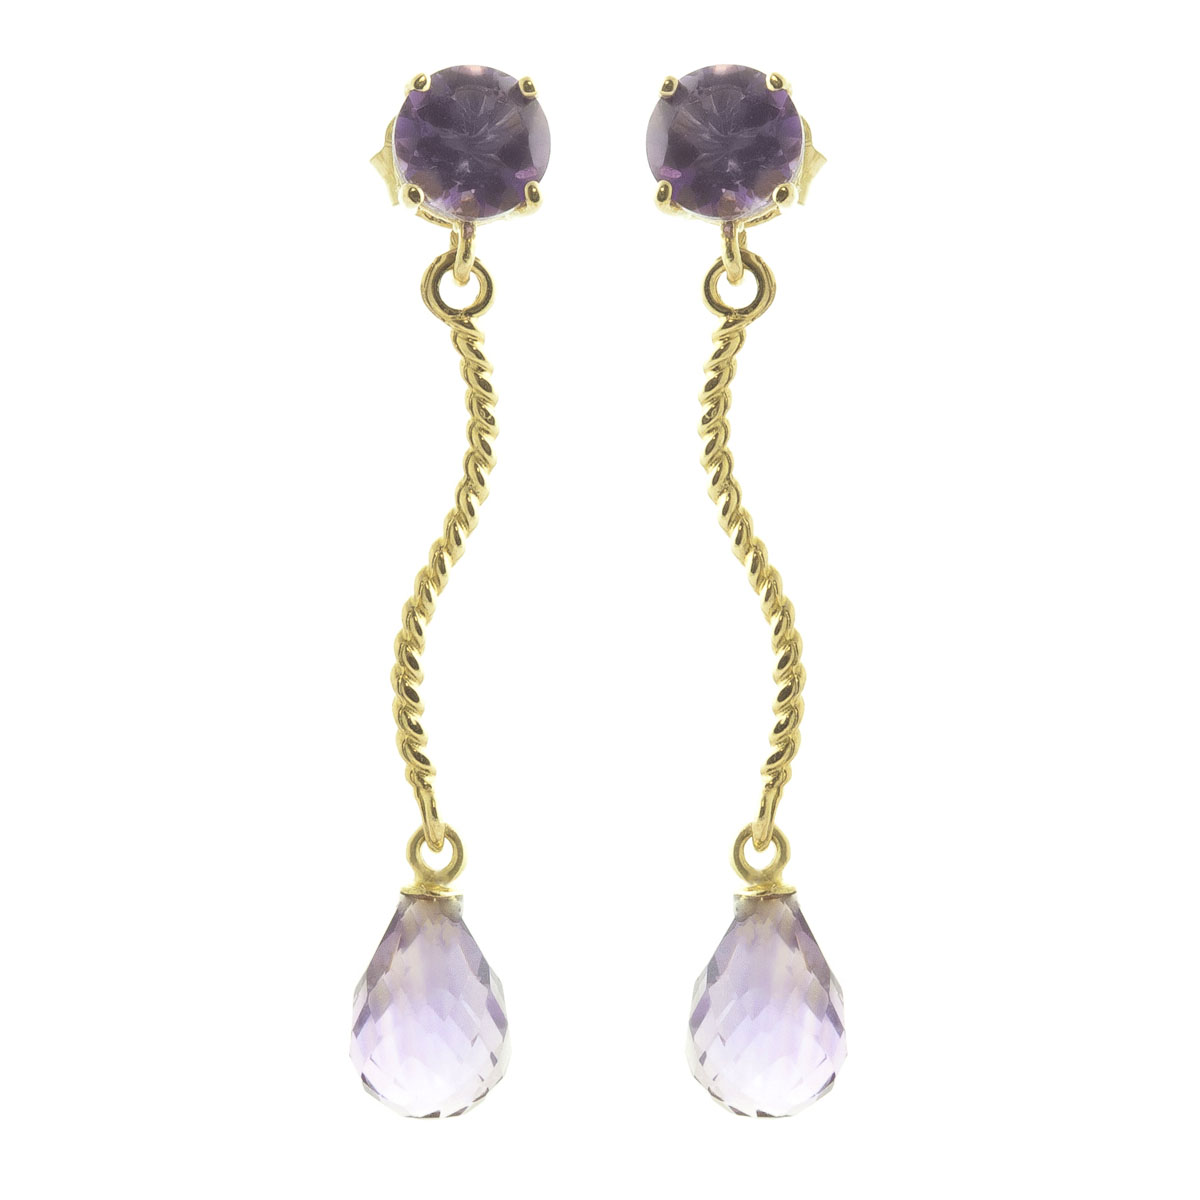 Image of  			   			  			   			  Amethyst Lure Drop Earrings 4.3 ctw in 9ct Gold